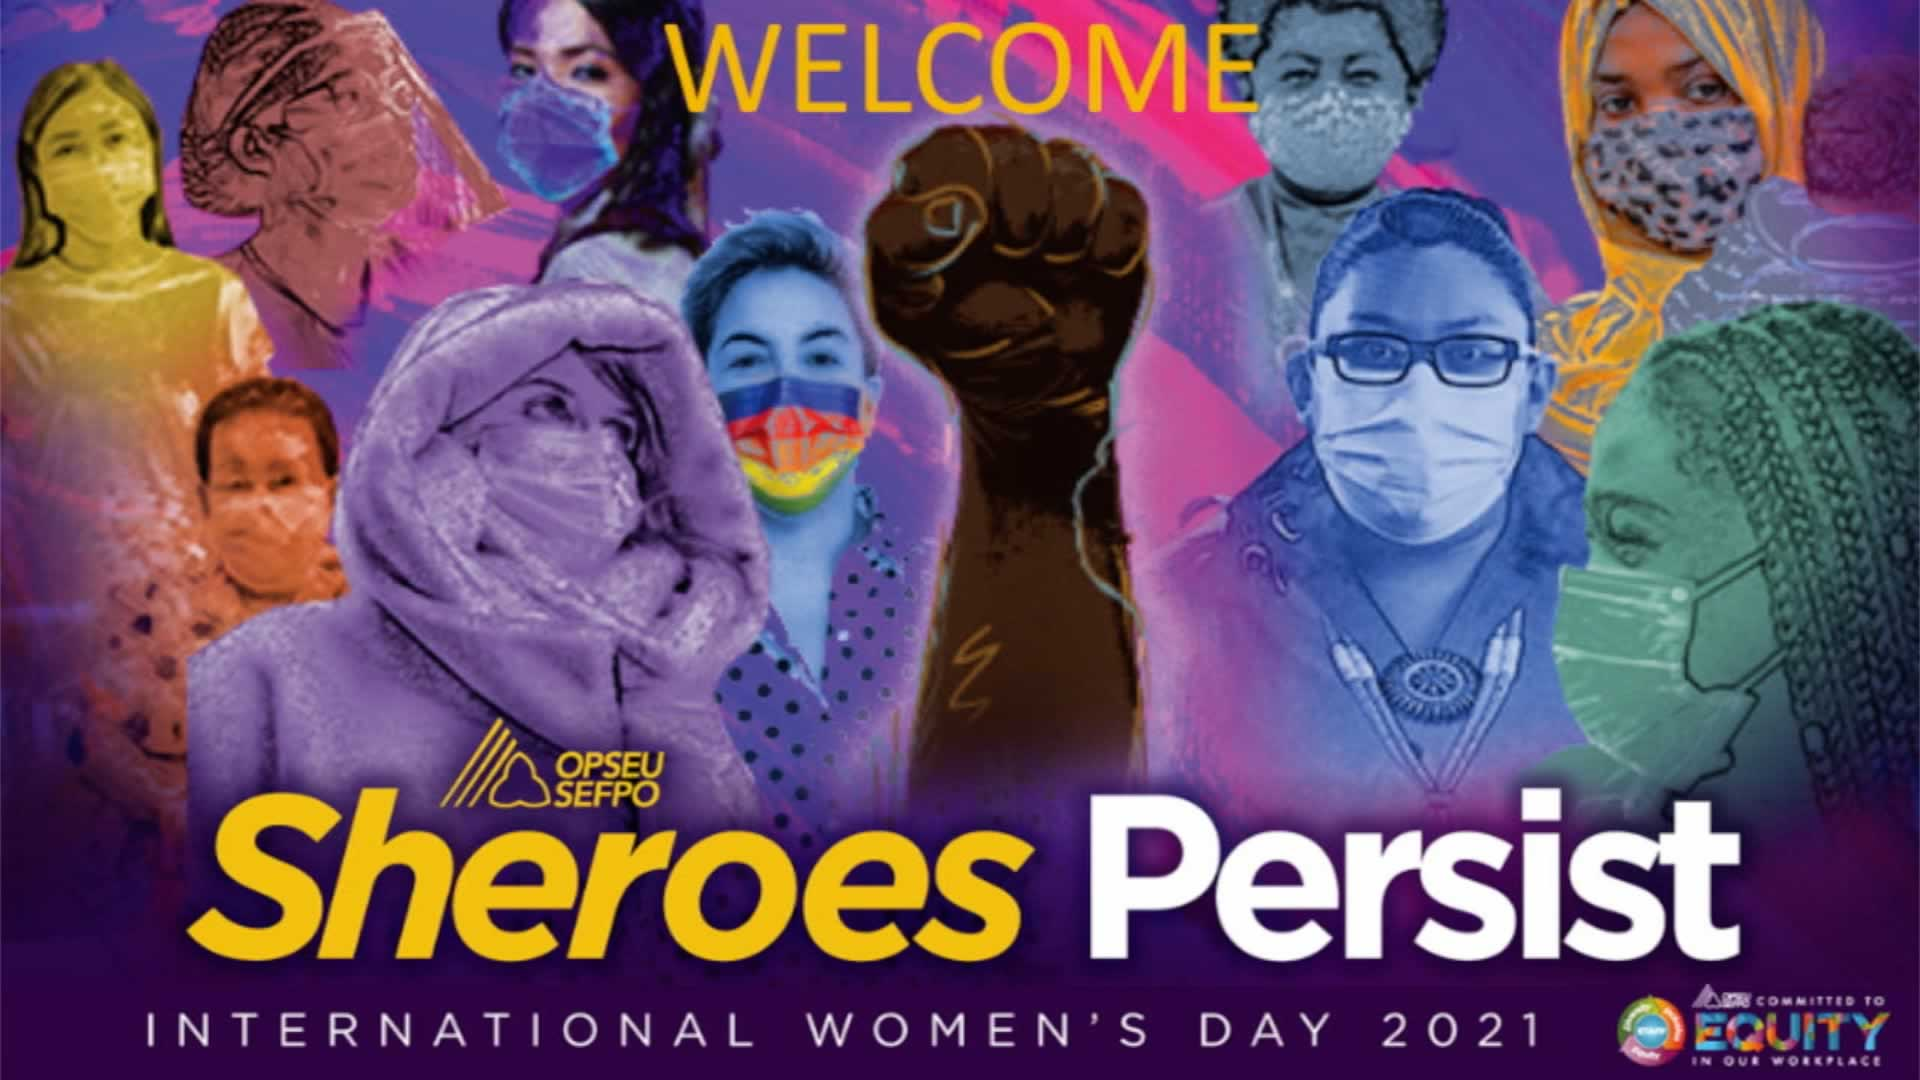 Sheroes Persist. International Women's Day Collage